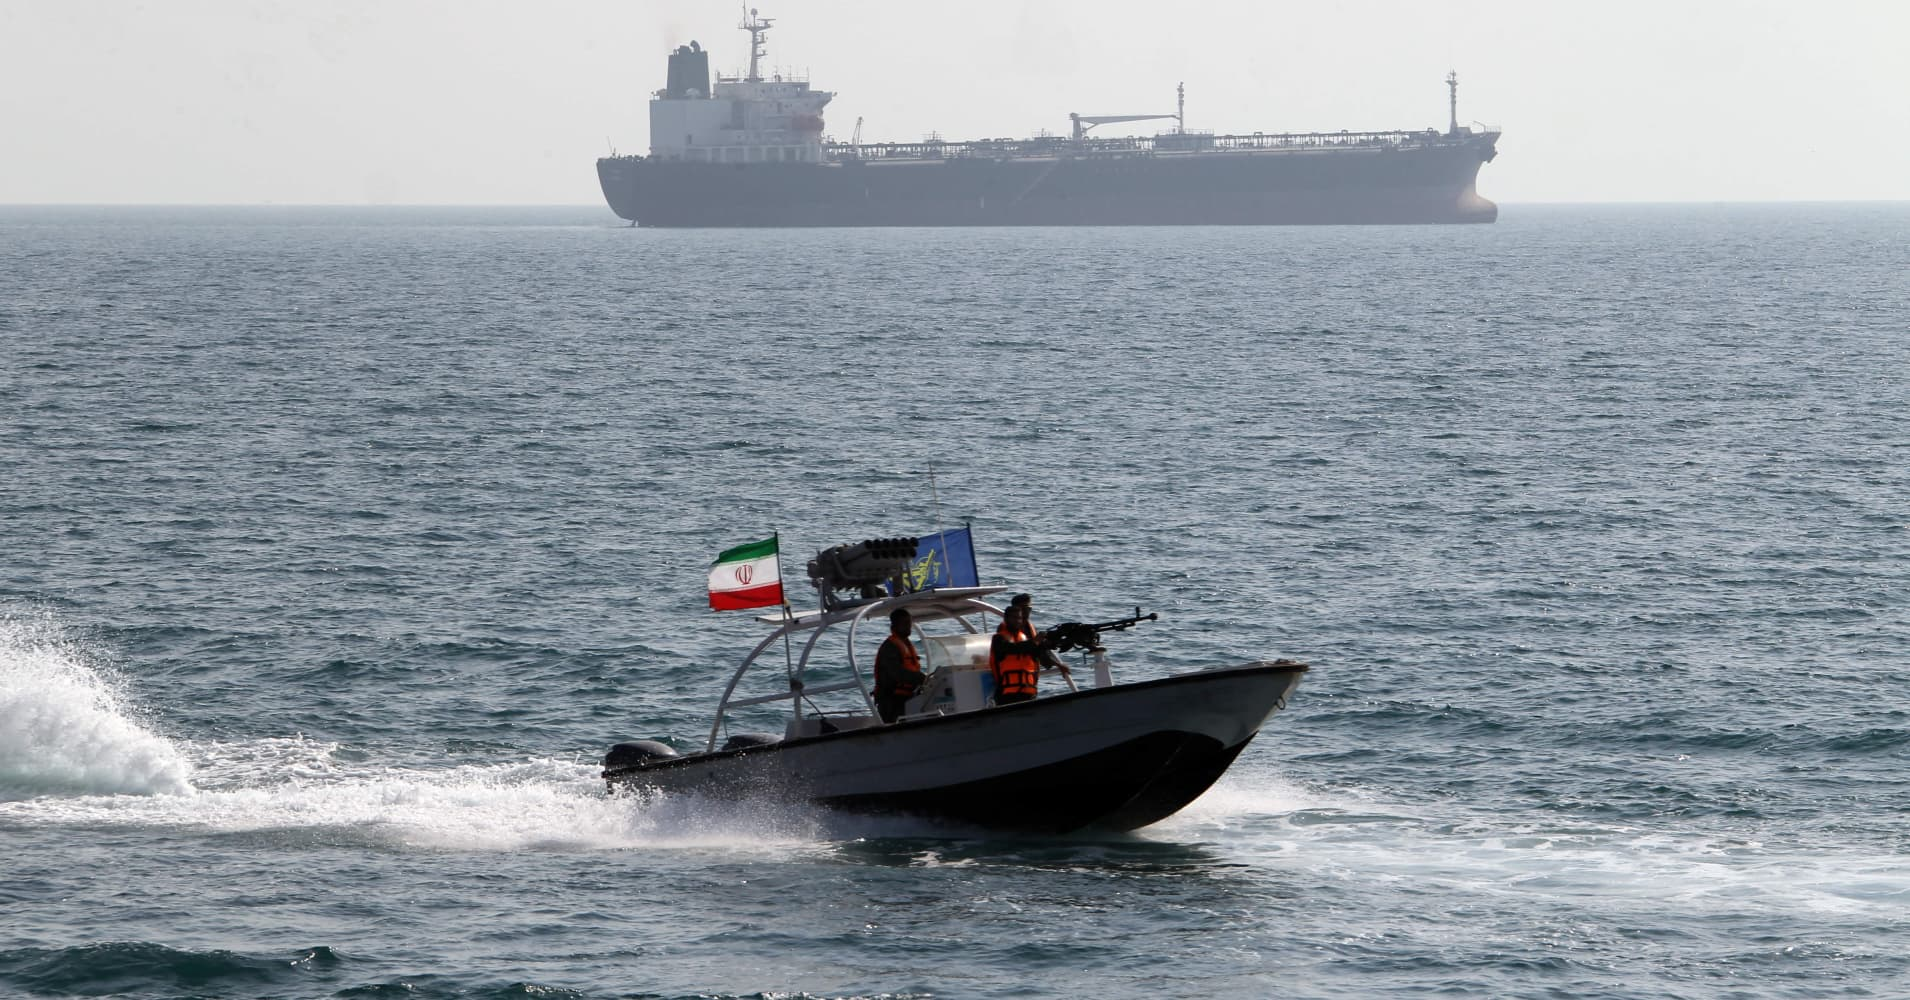 US crude sanctions against Iran could push oil prices above $100 a barrel, strategists say